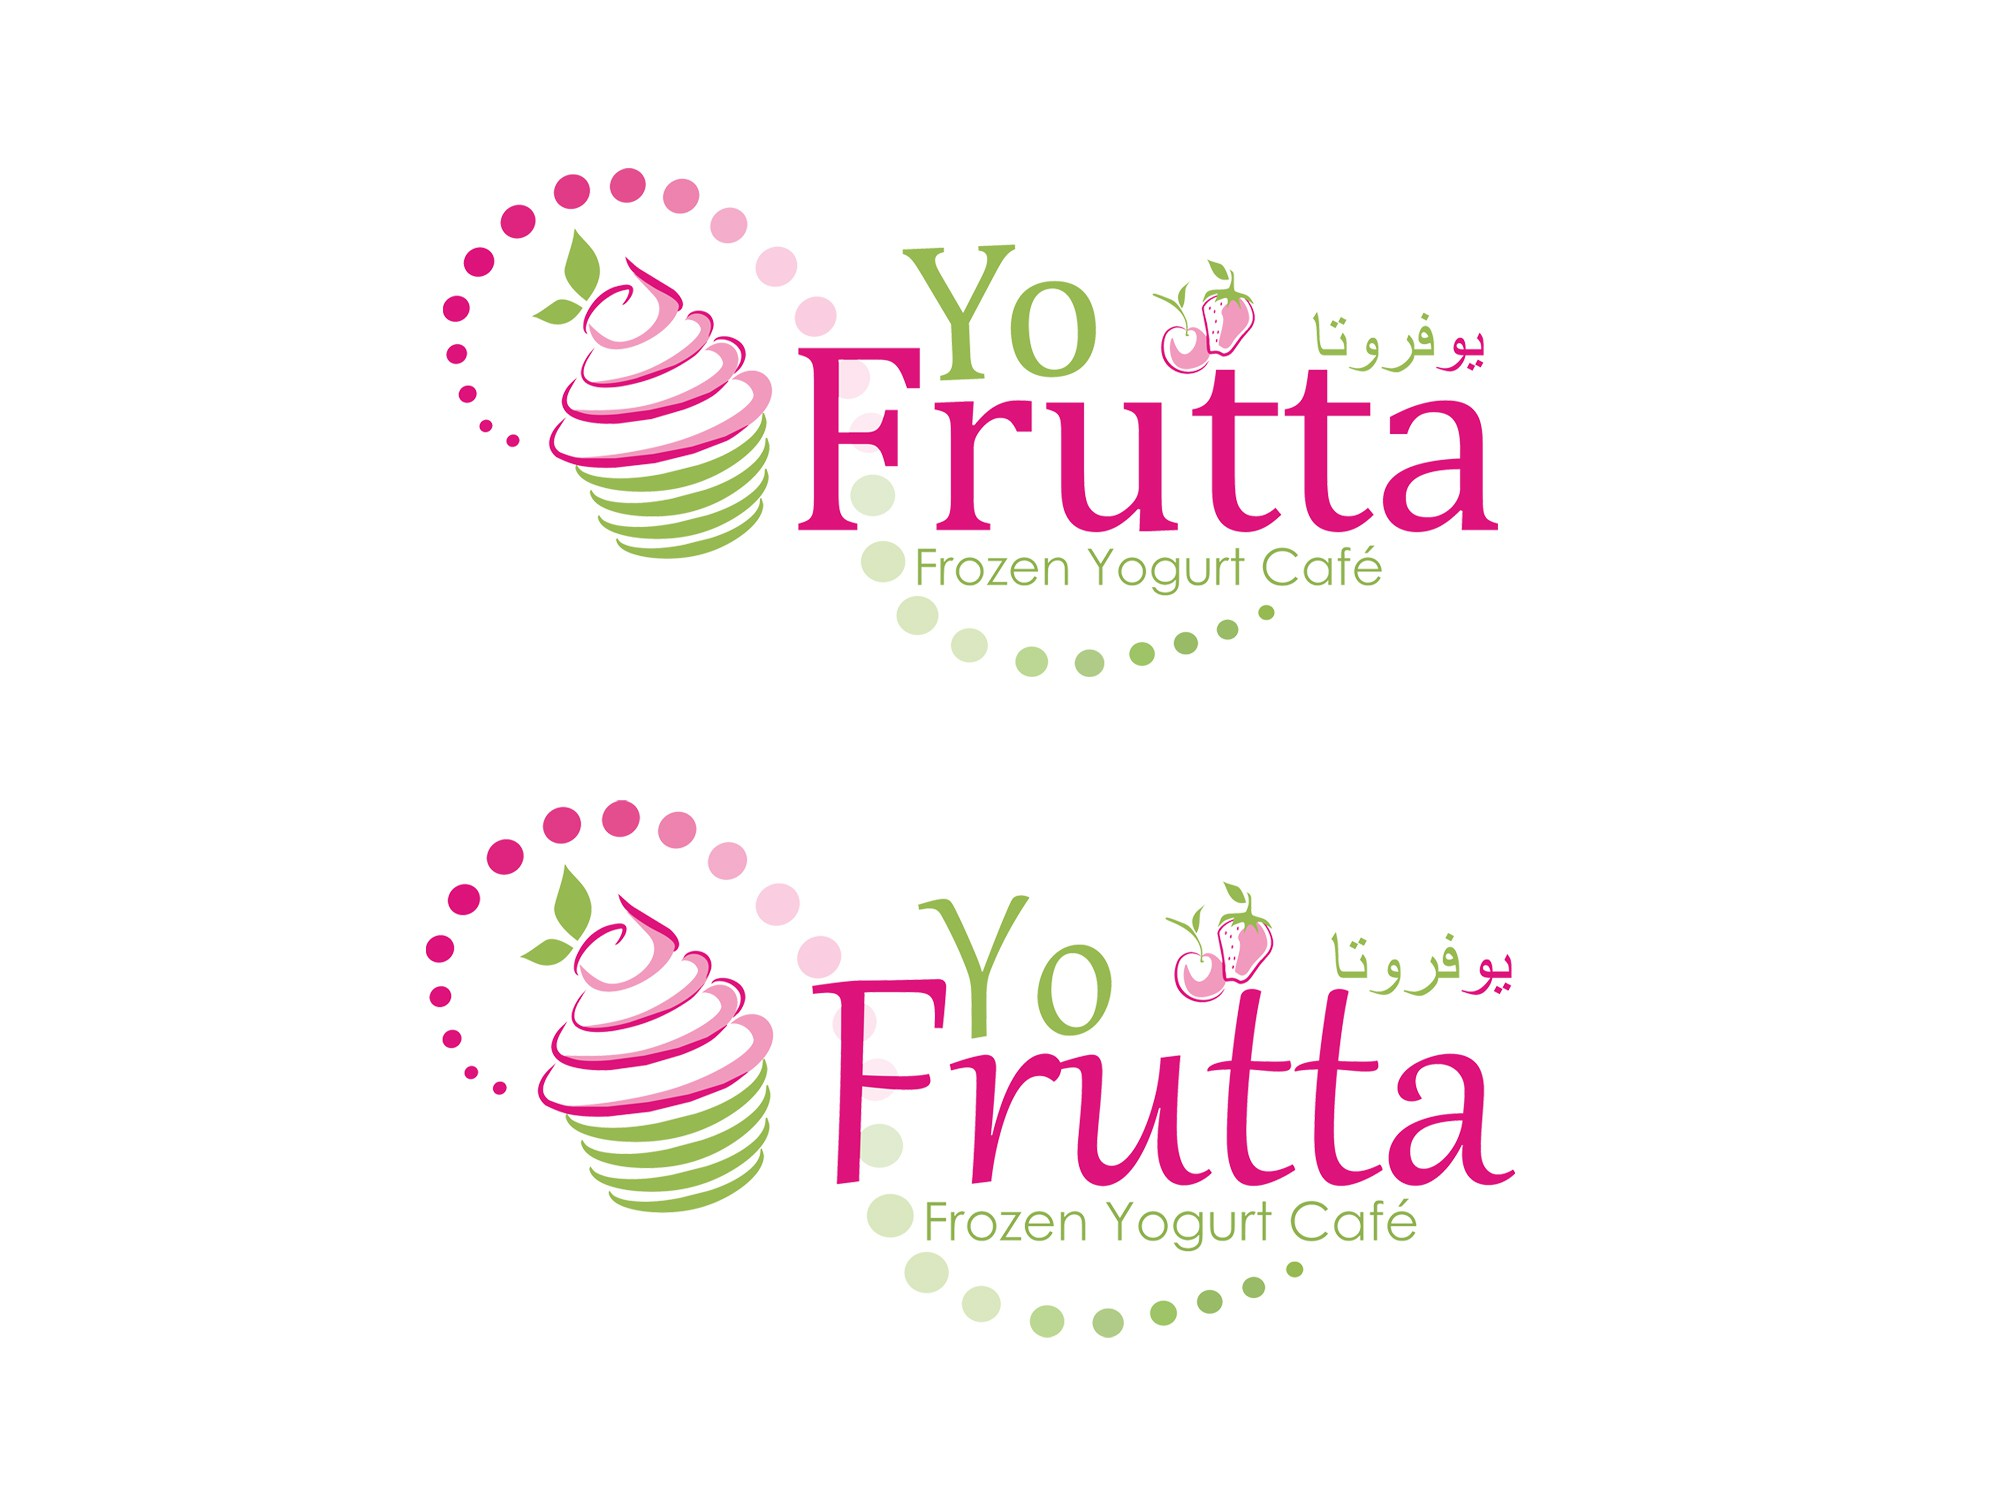 New logo wanted for YoFrutta